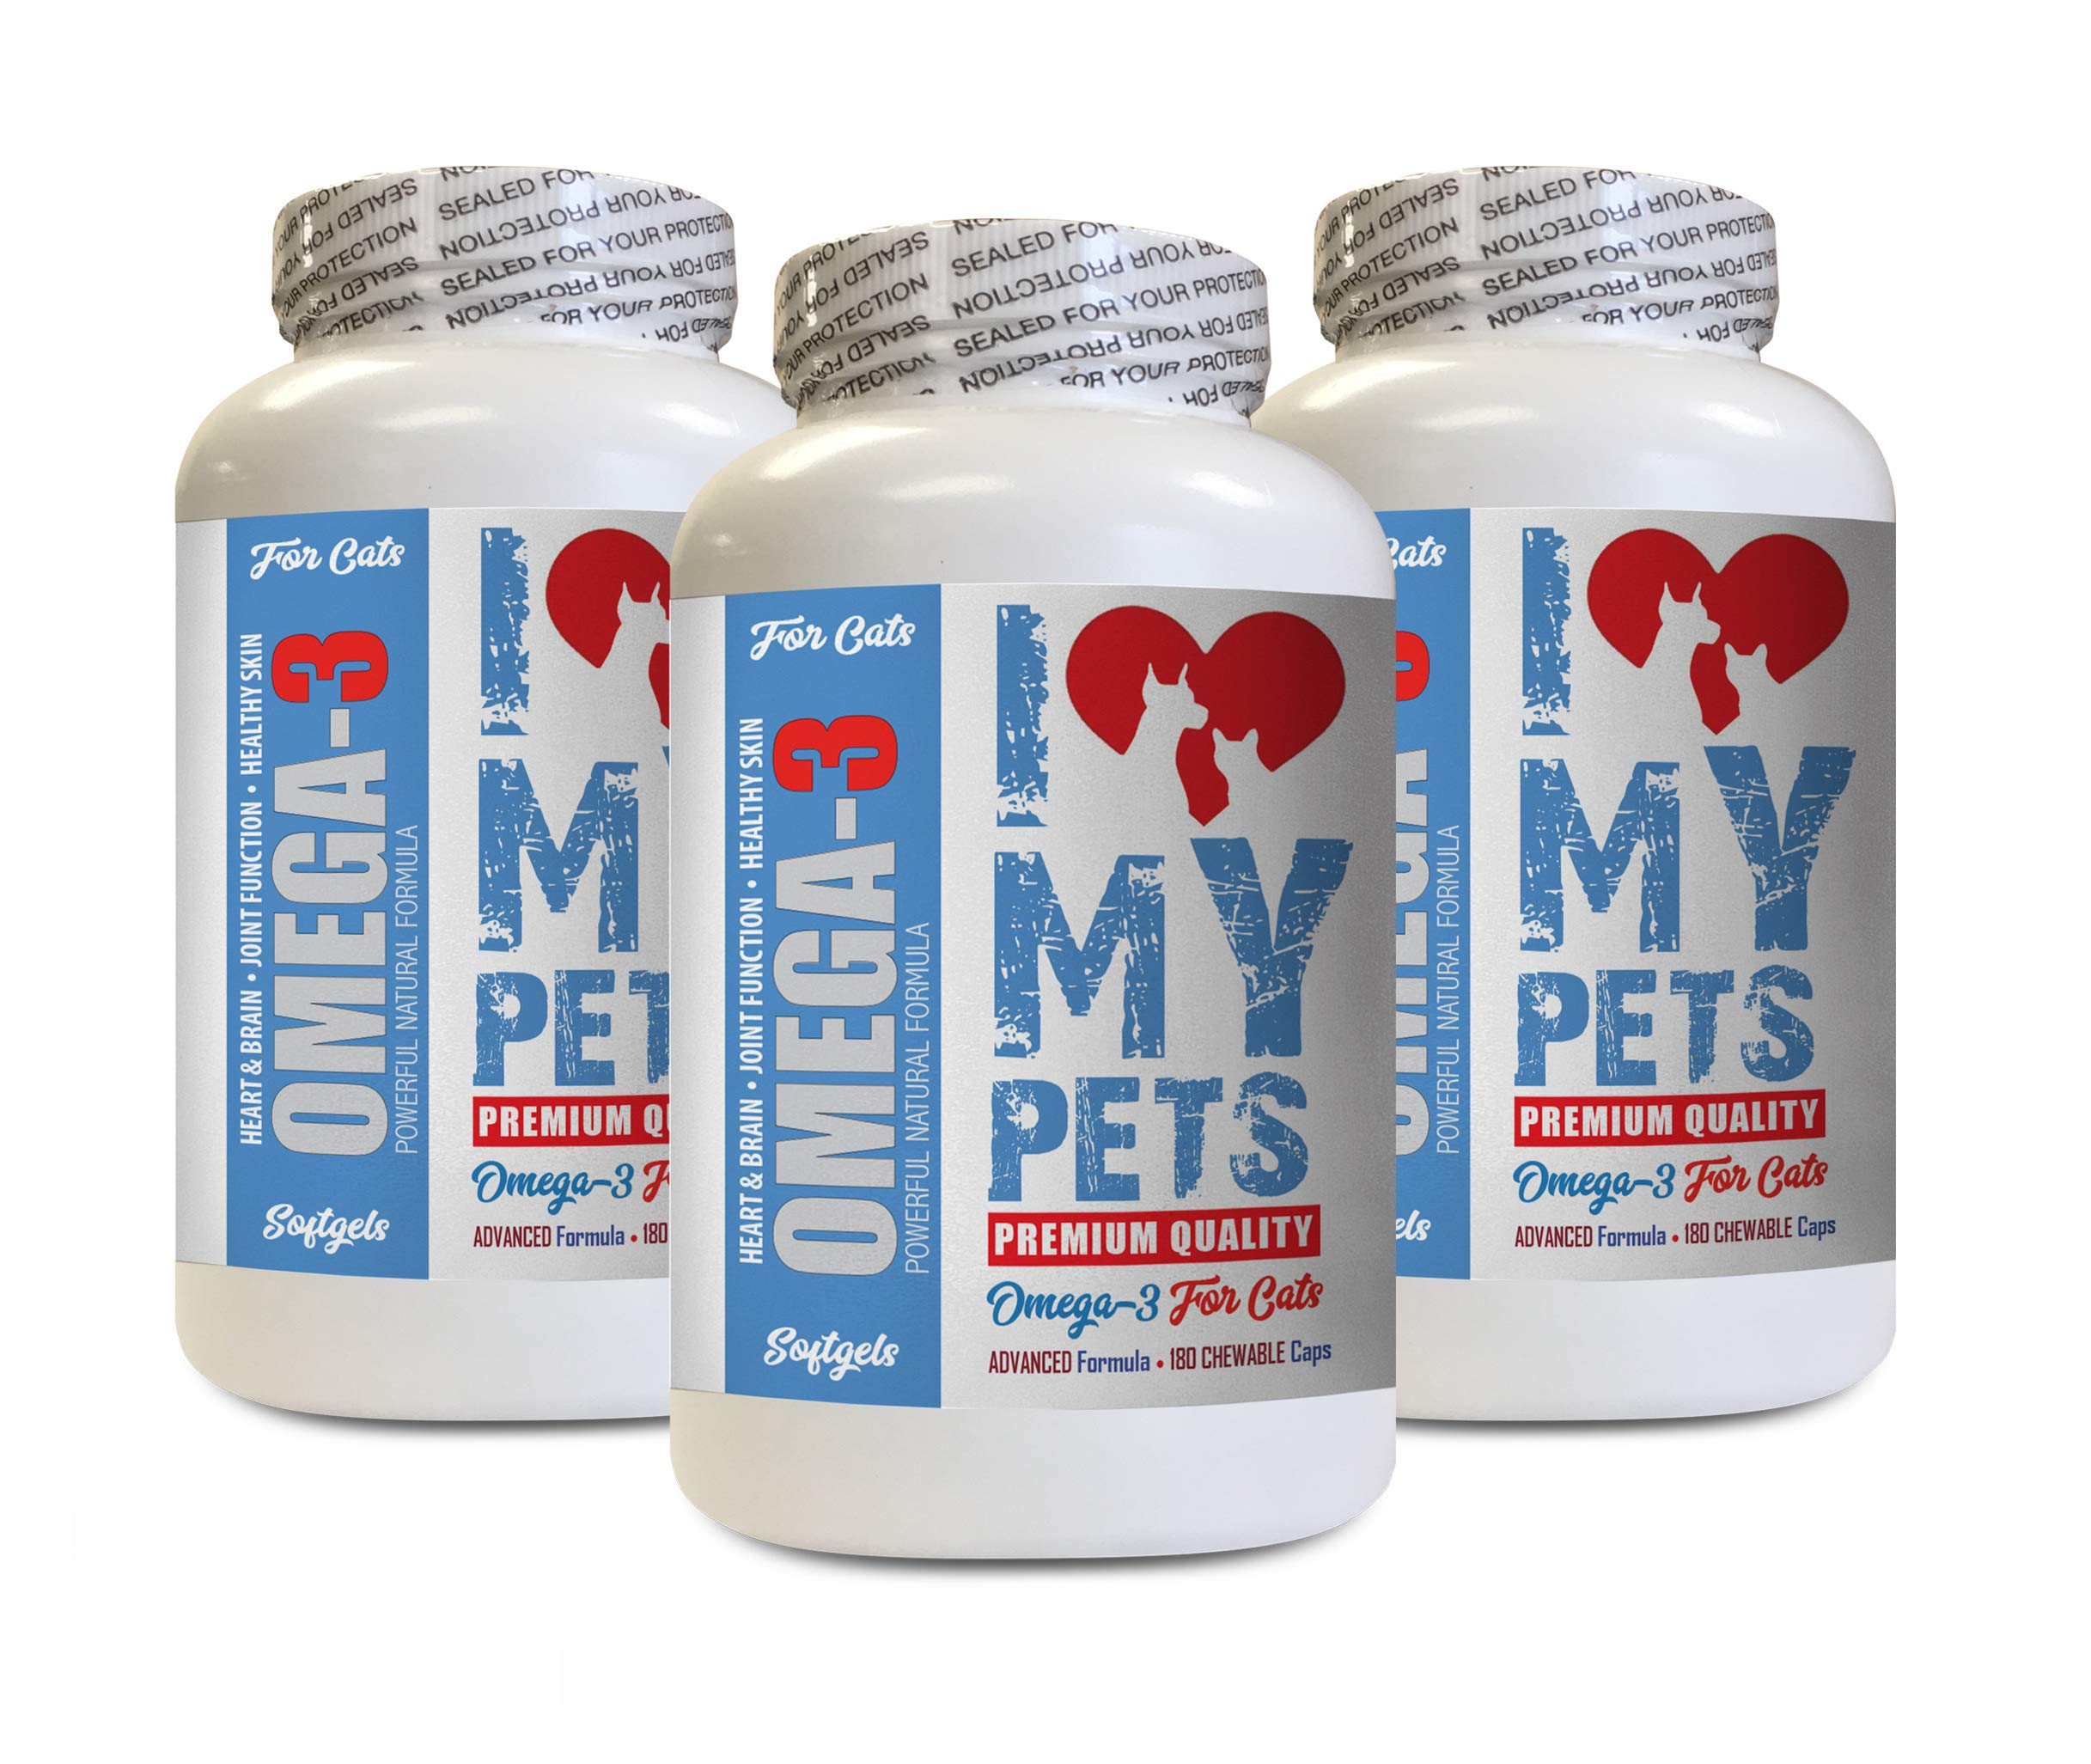 I LOVE MY PETS LLC cat Omega 3 6 9 - Omega 3 Fatty ACIDS for Cats - Best Health Option - Premium - Omega 3 for Cats Liquid - 540 Softgels (3 Bottles) by I LOVE MY PETS LLC